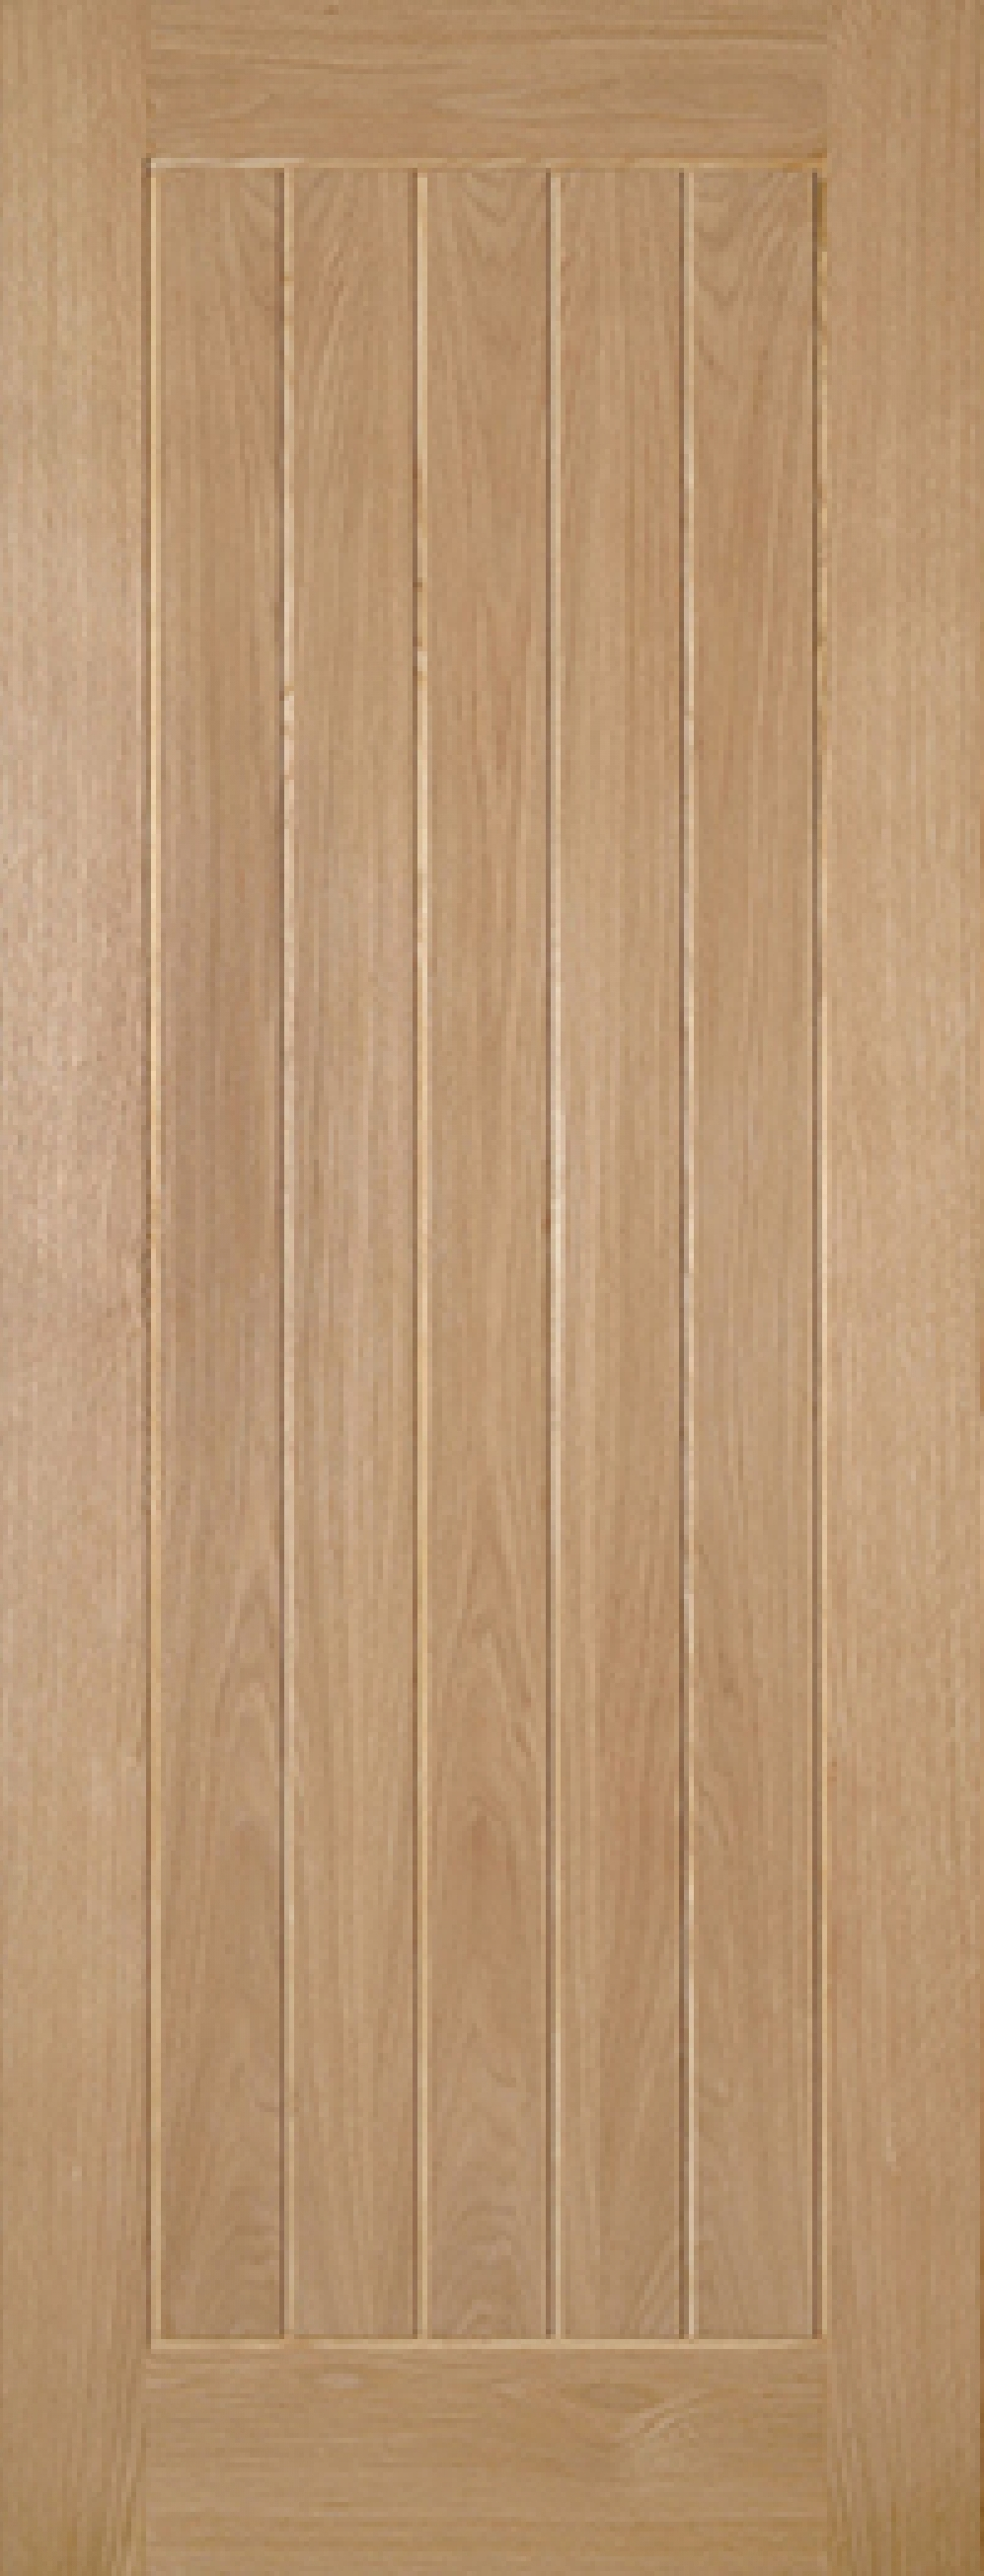 Ely Oak Door - Prefinished & Ely Oak Door - PREFINISHED | Oak Internal Doors | Vibrant Doors